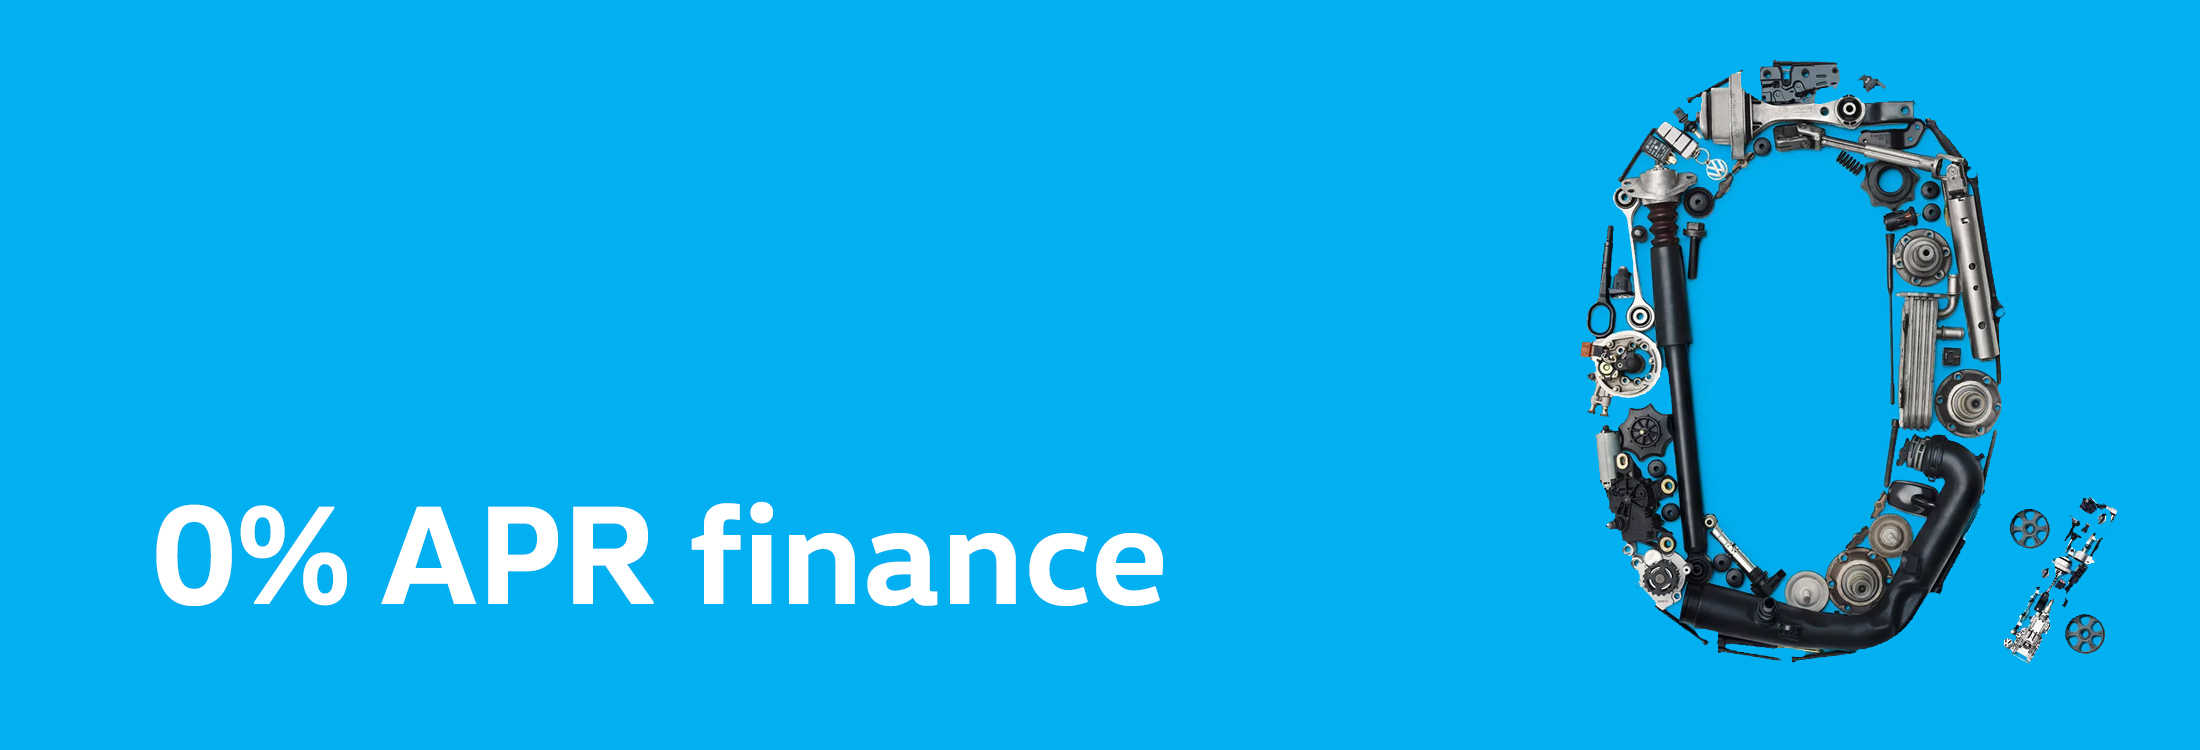 0% APR finance on service maintenance and repairs